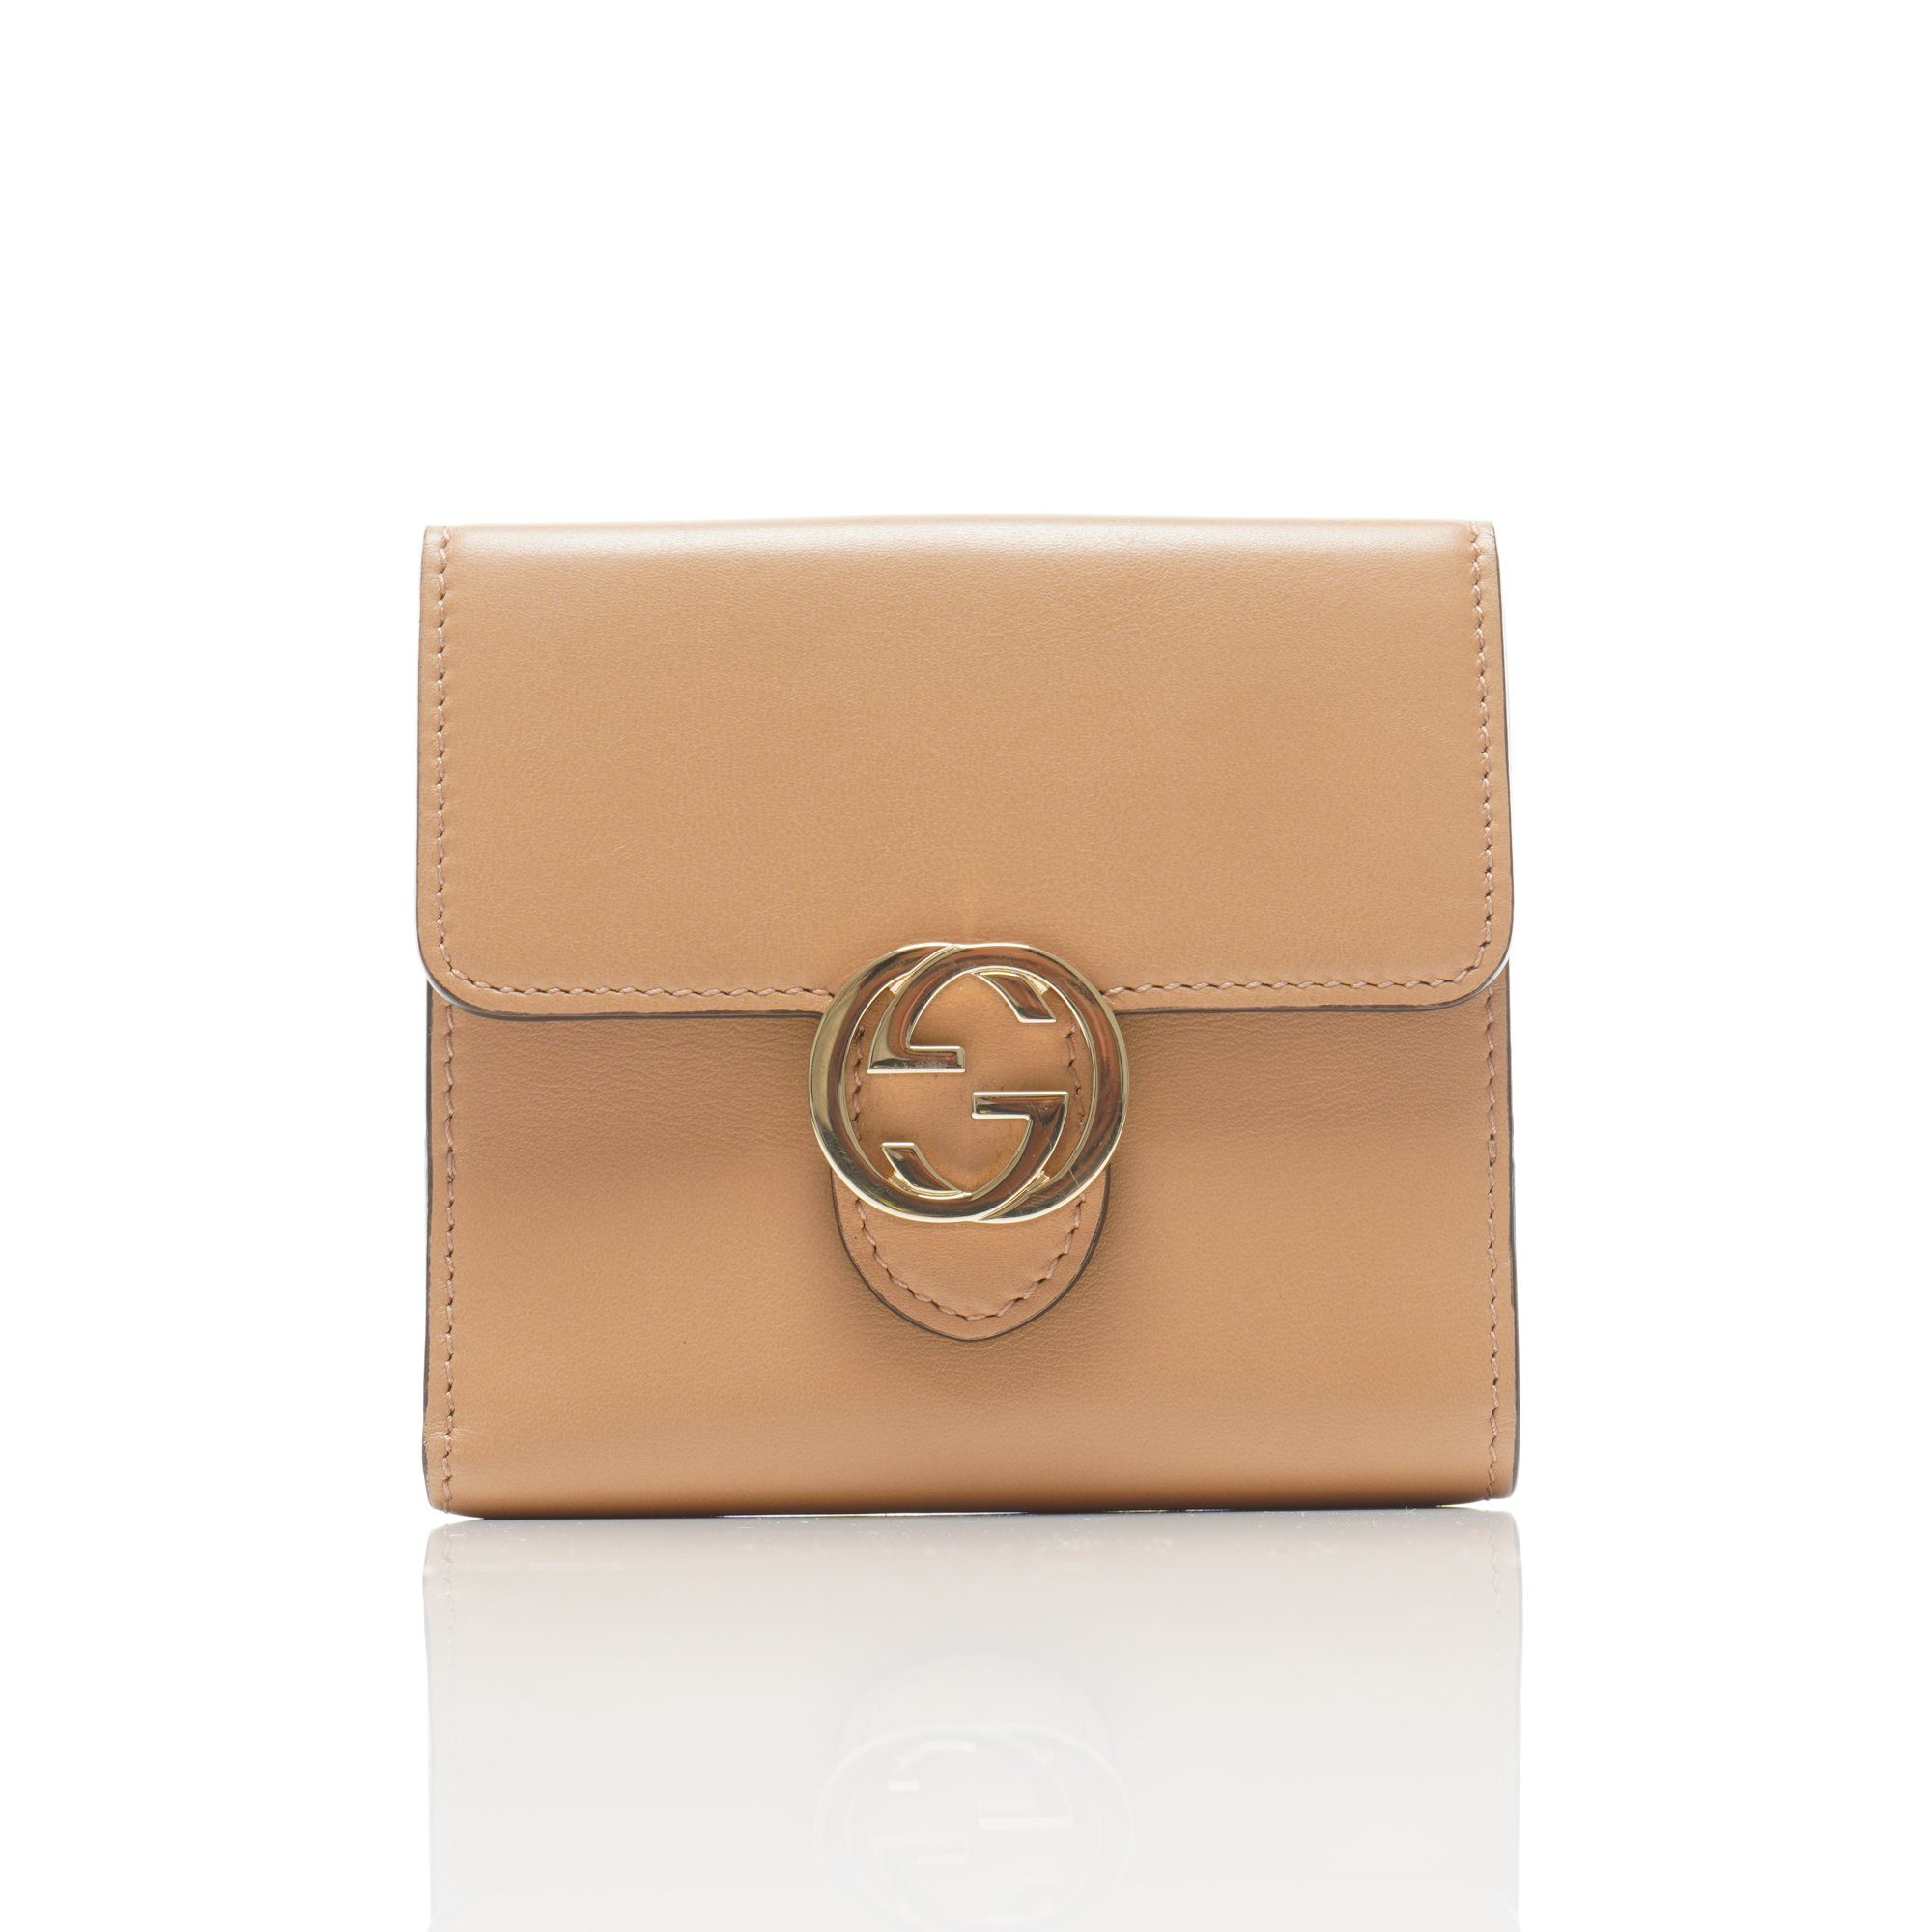 Gucci Beige Folded Leather Wallet